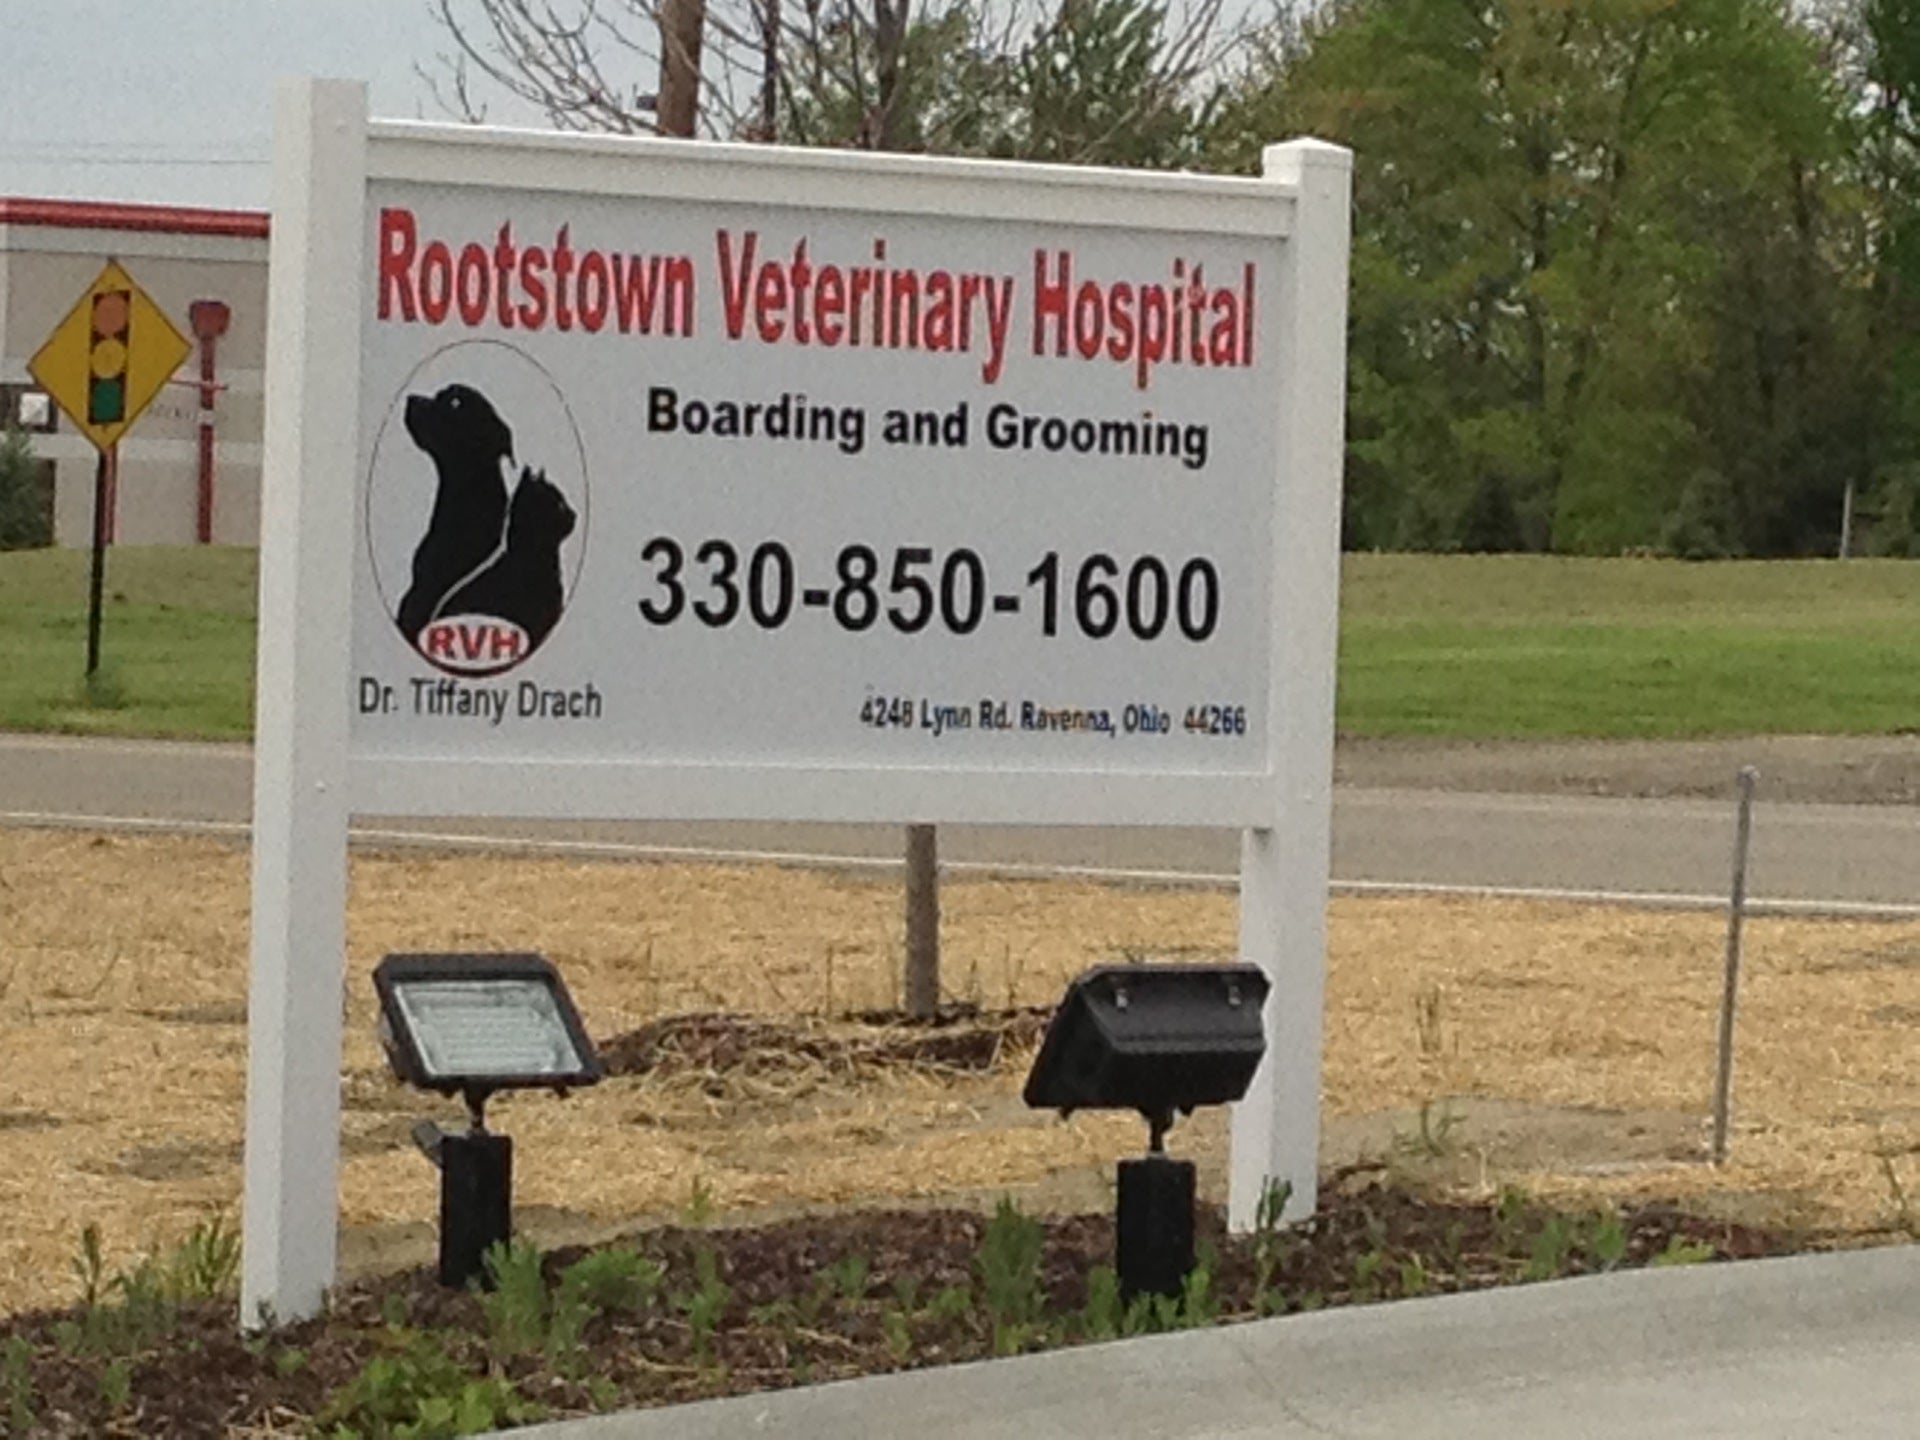 Rootstown Veterinary Hospital,